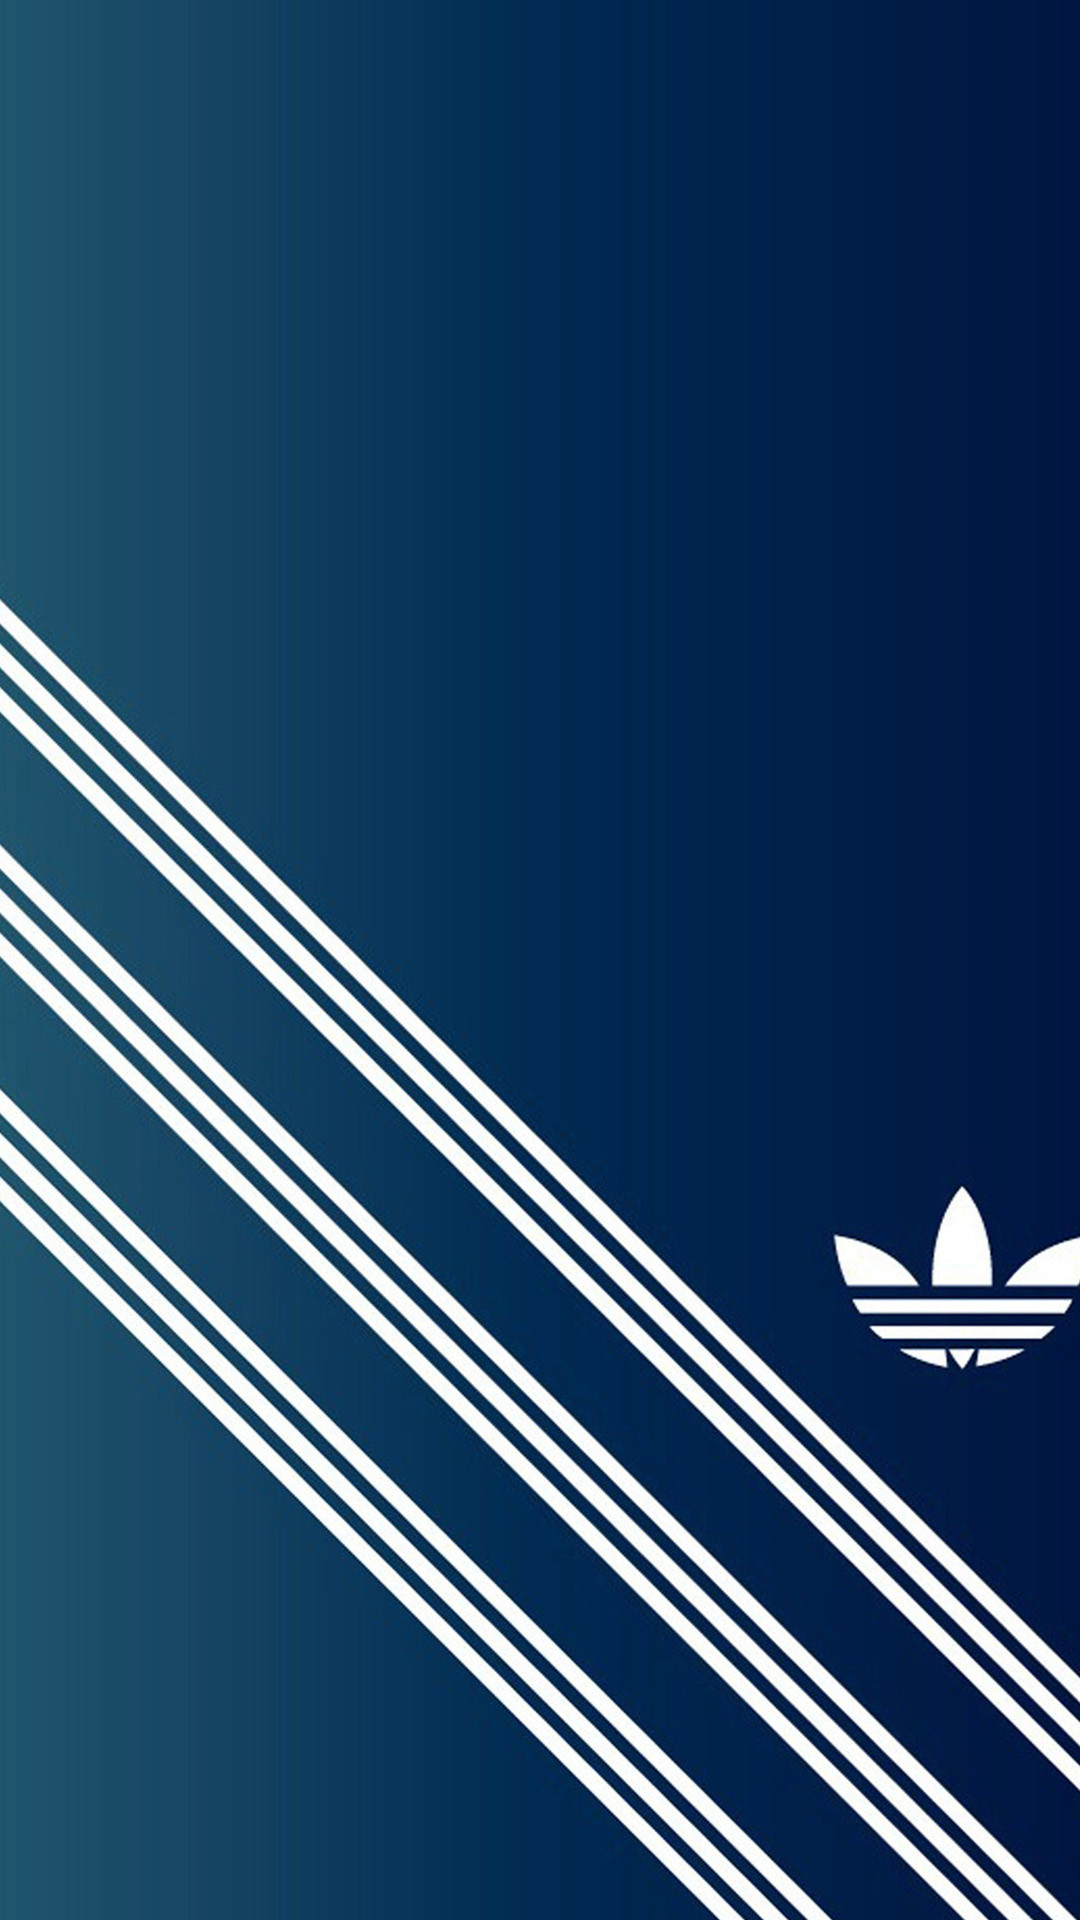 1080x1920 Adidas Htc One M8 Wallpaper